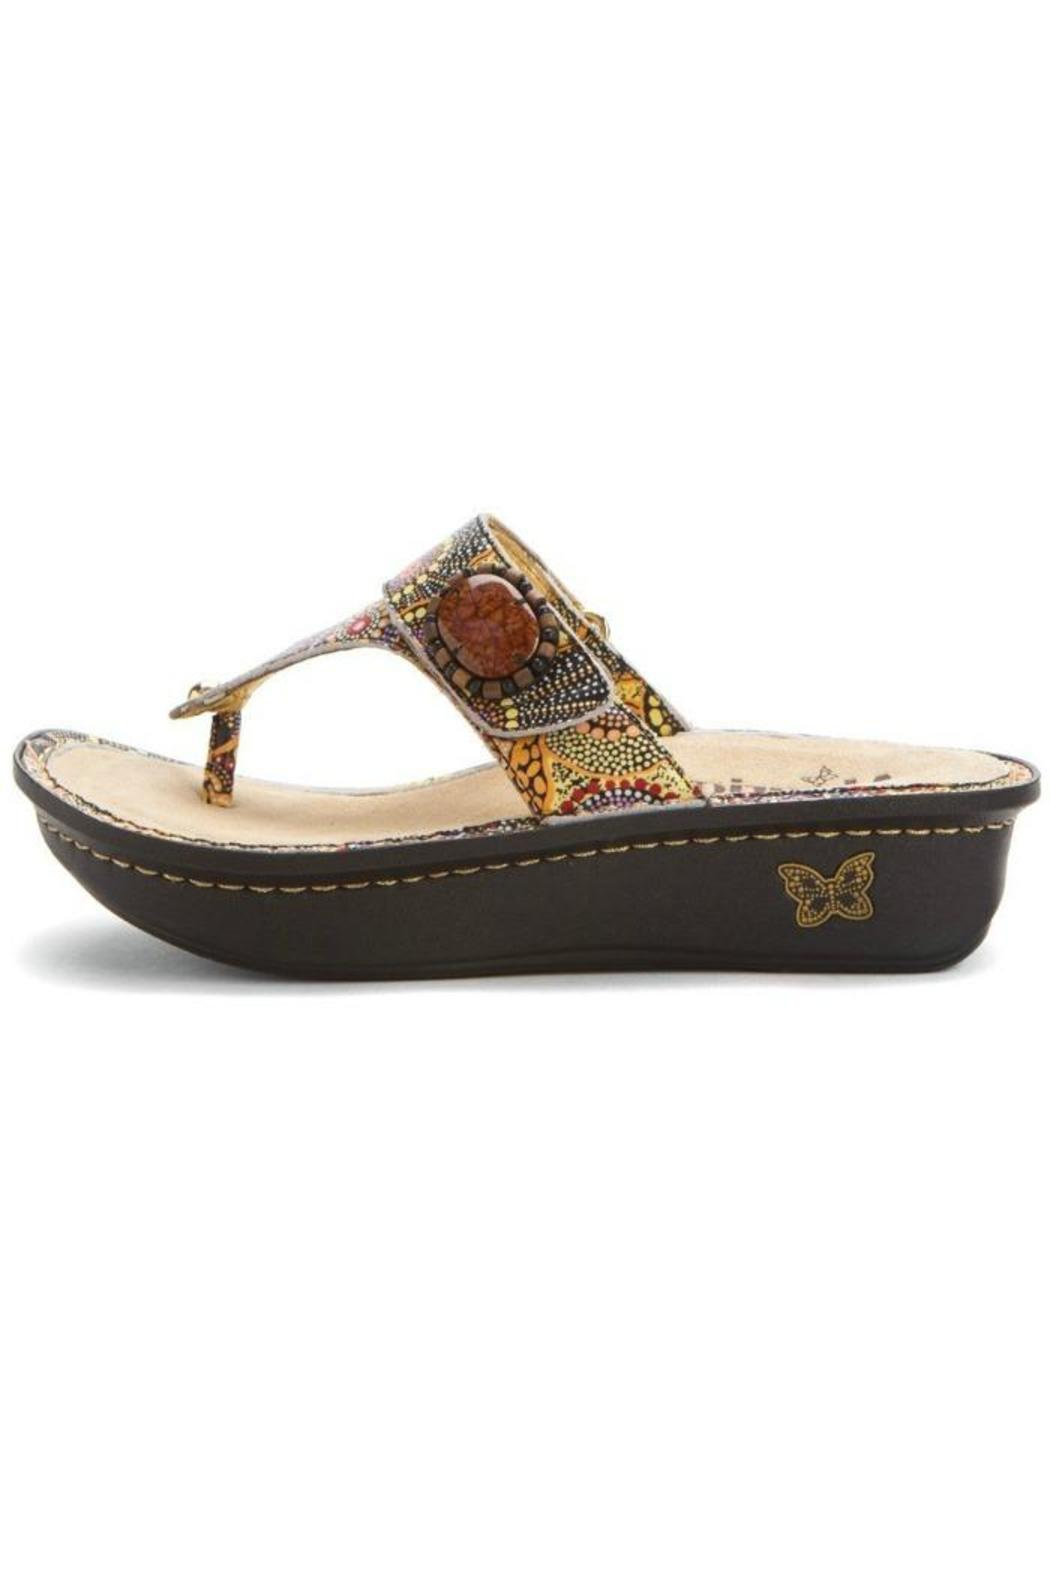 Carina Shoes Price